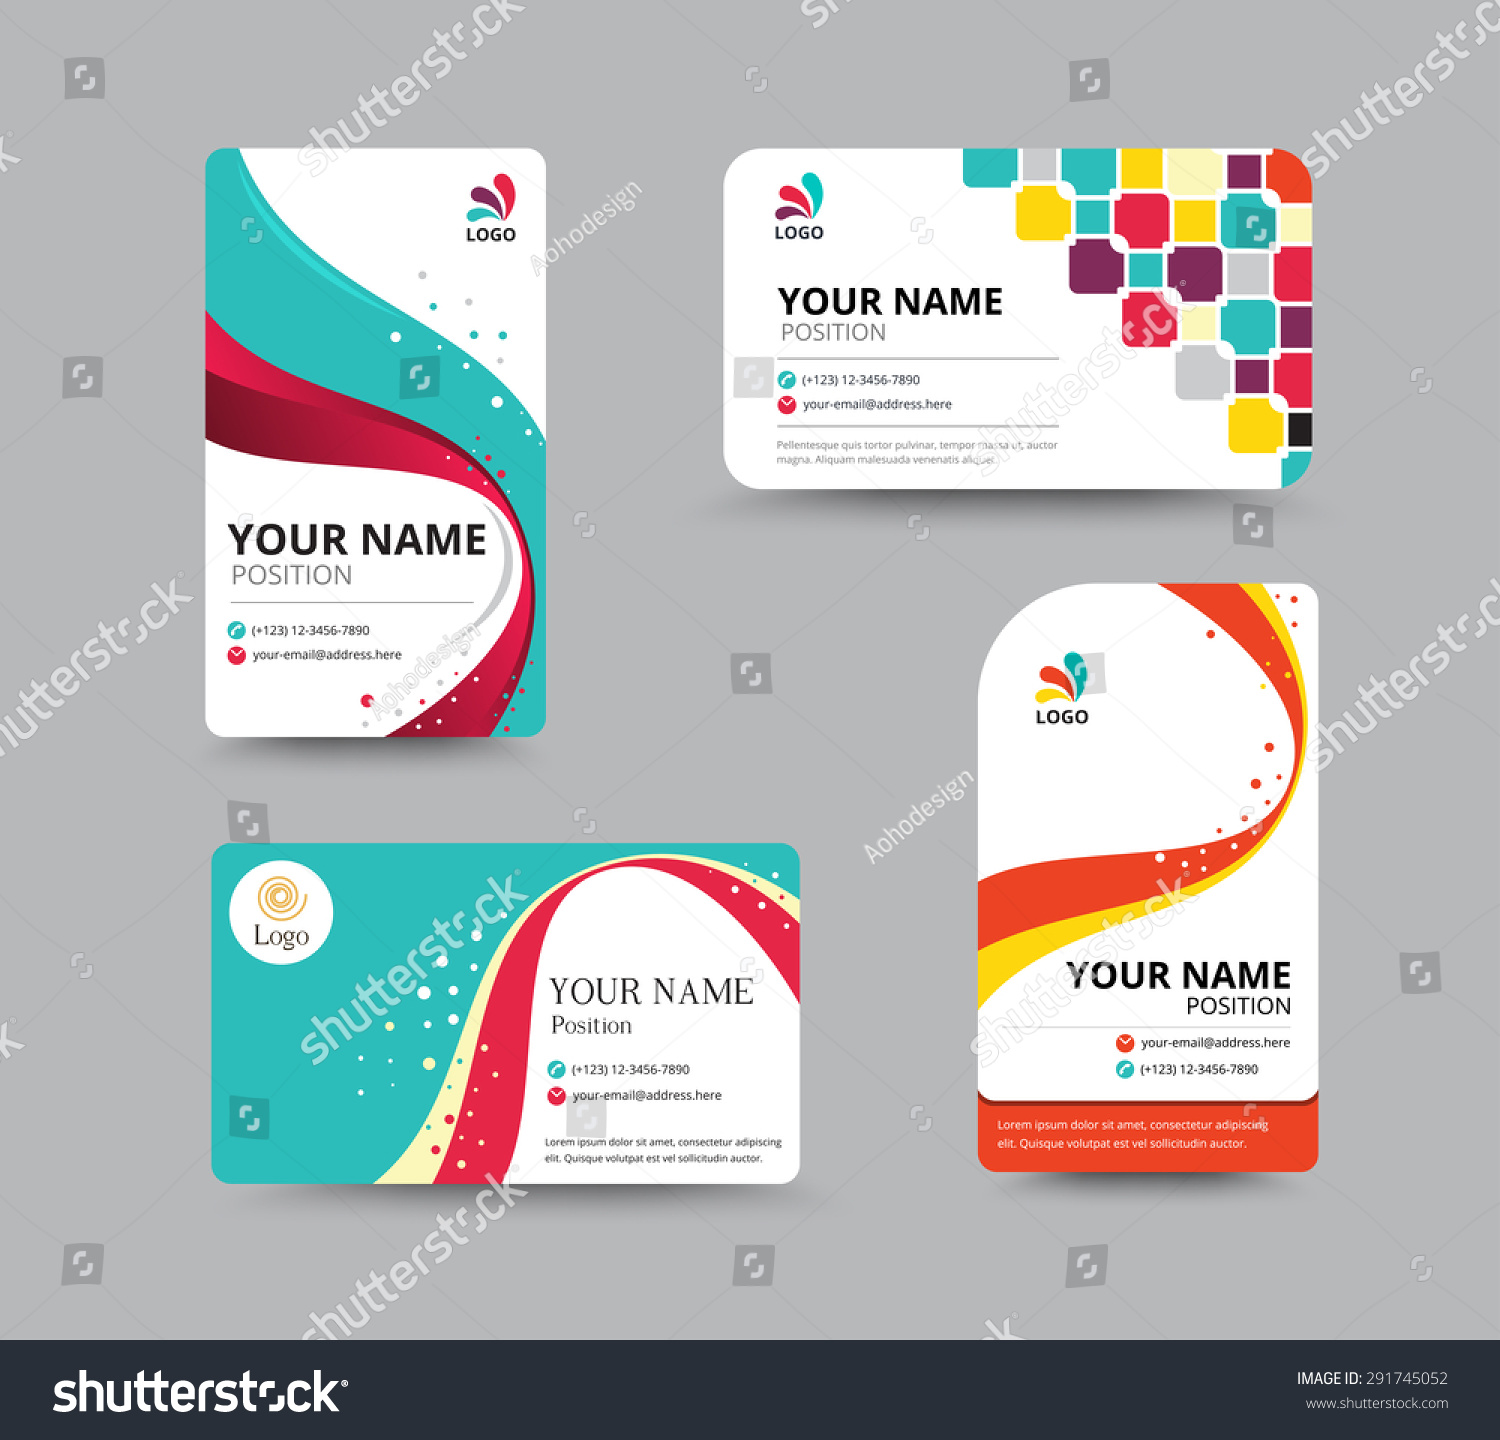 Business card template design floral concept stock vector business card template design with floral concept vector illustration magicingreecefo Image collections